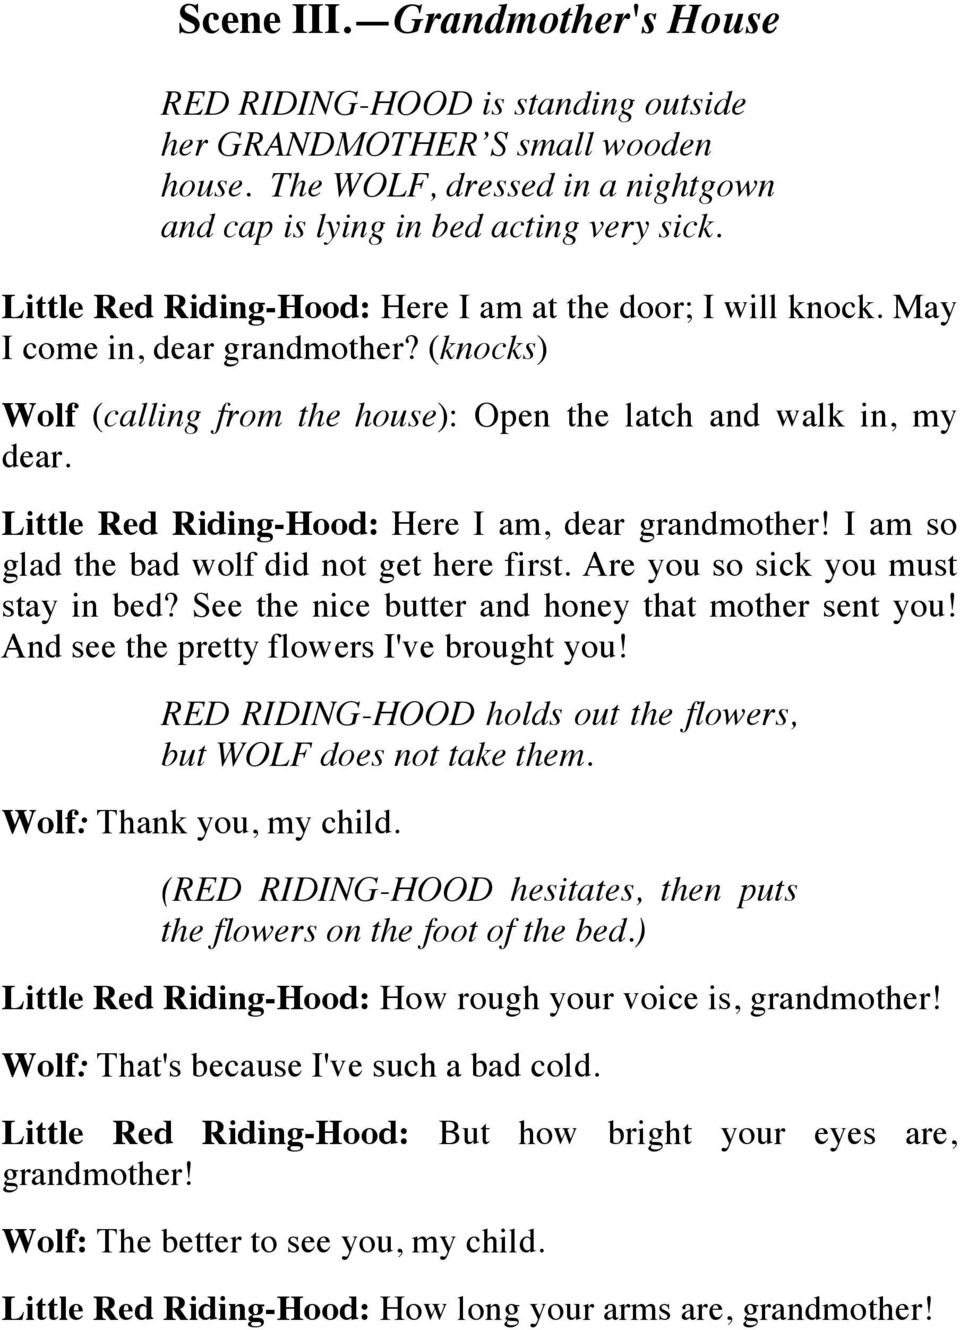 Little Red Riding-Hood: Here I am, dear grandmother! I am so glad the bad wolf did not get here first. Are you so sick you must stay in bed? See the nice butter and honey that mother sent you!